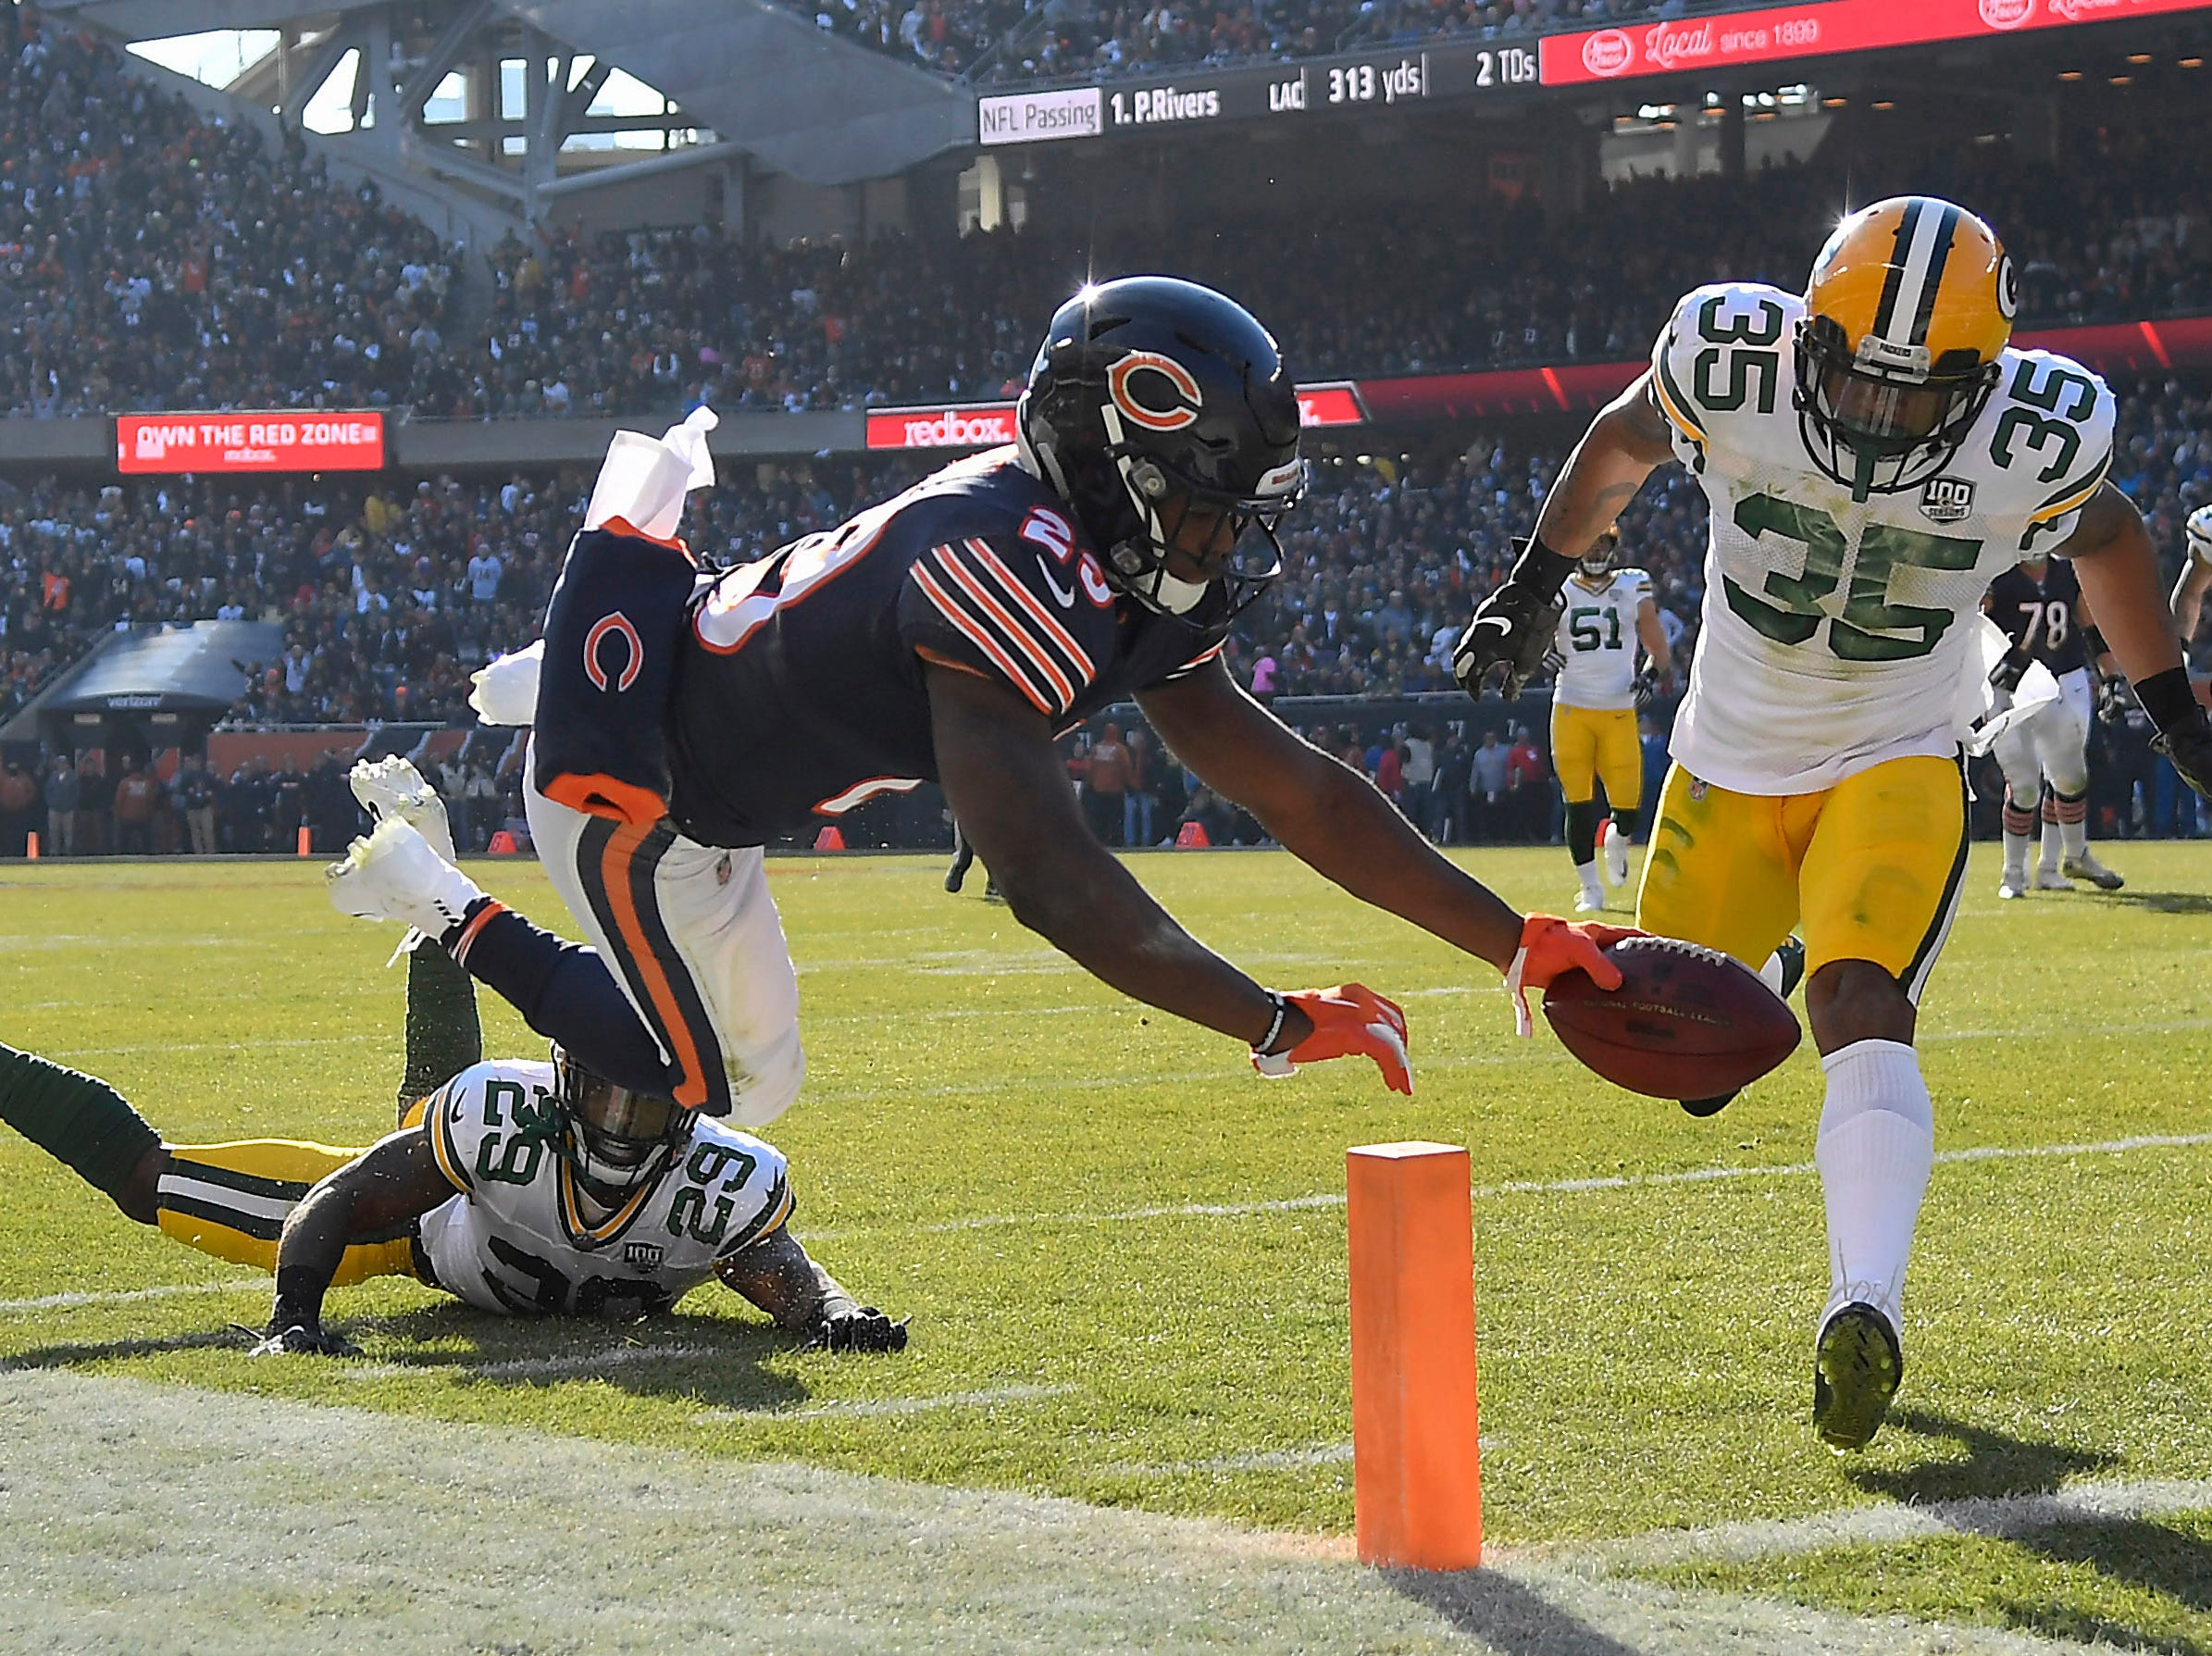 Dec. 16: Chicago Bears running back Tarik Cohen (29) scores a touchdown against the Green Bay Packers at Soldier Field.